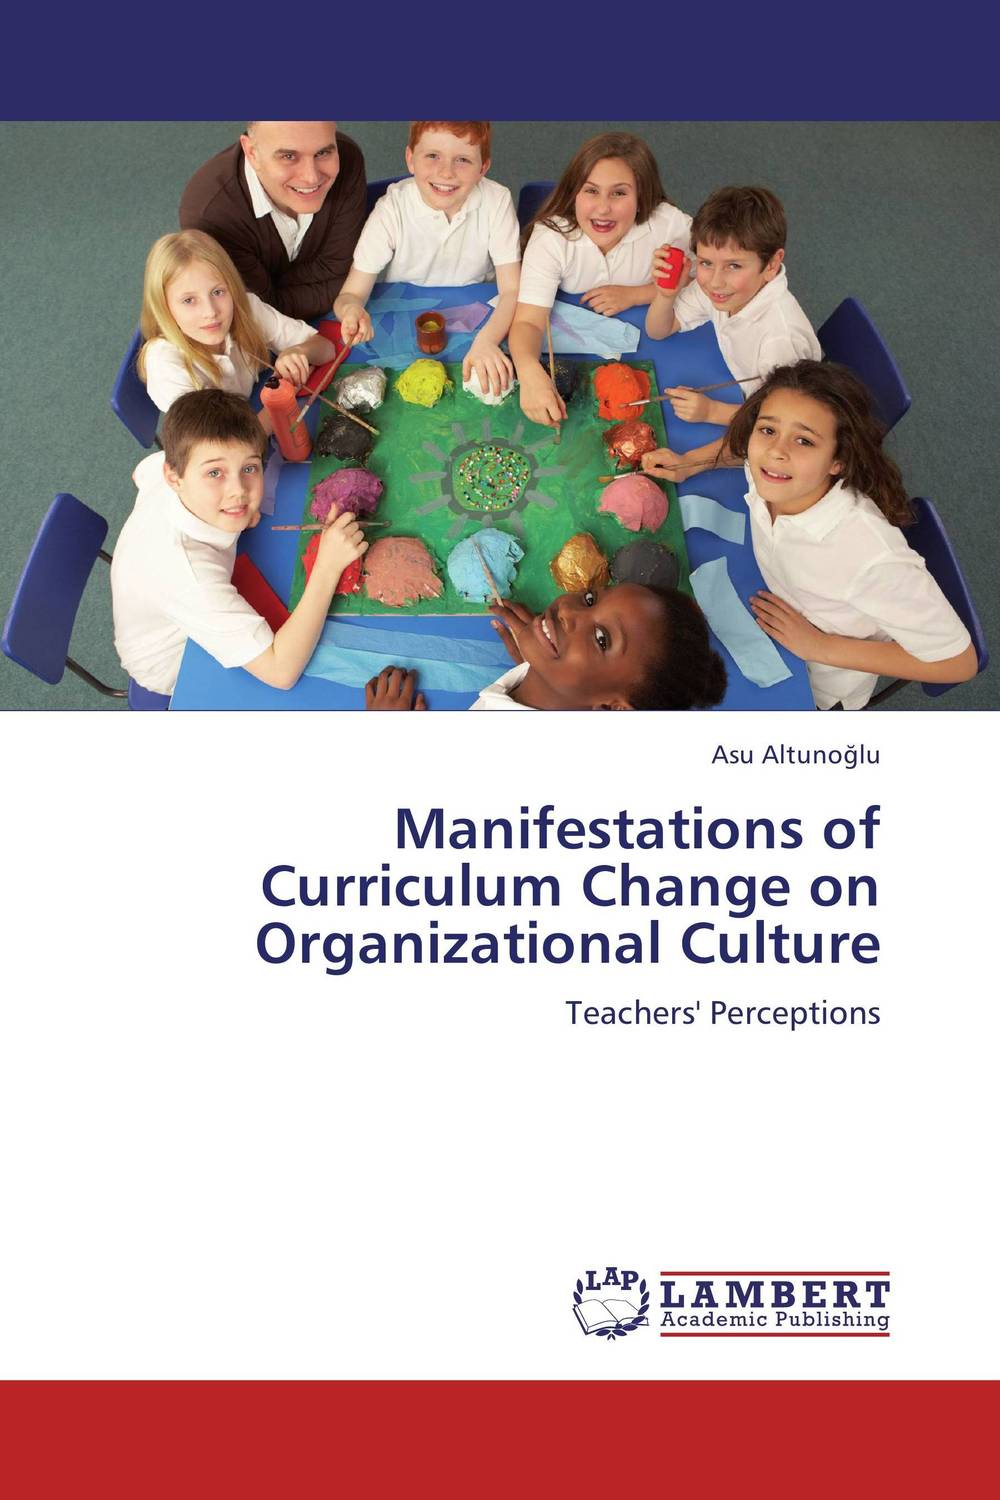 Manifestations of Curriculum Change on Organizational Culture the role of culture and communication in organizational change process